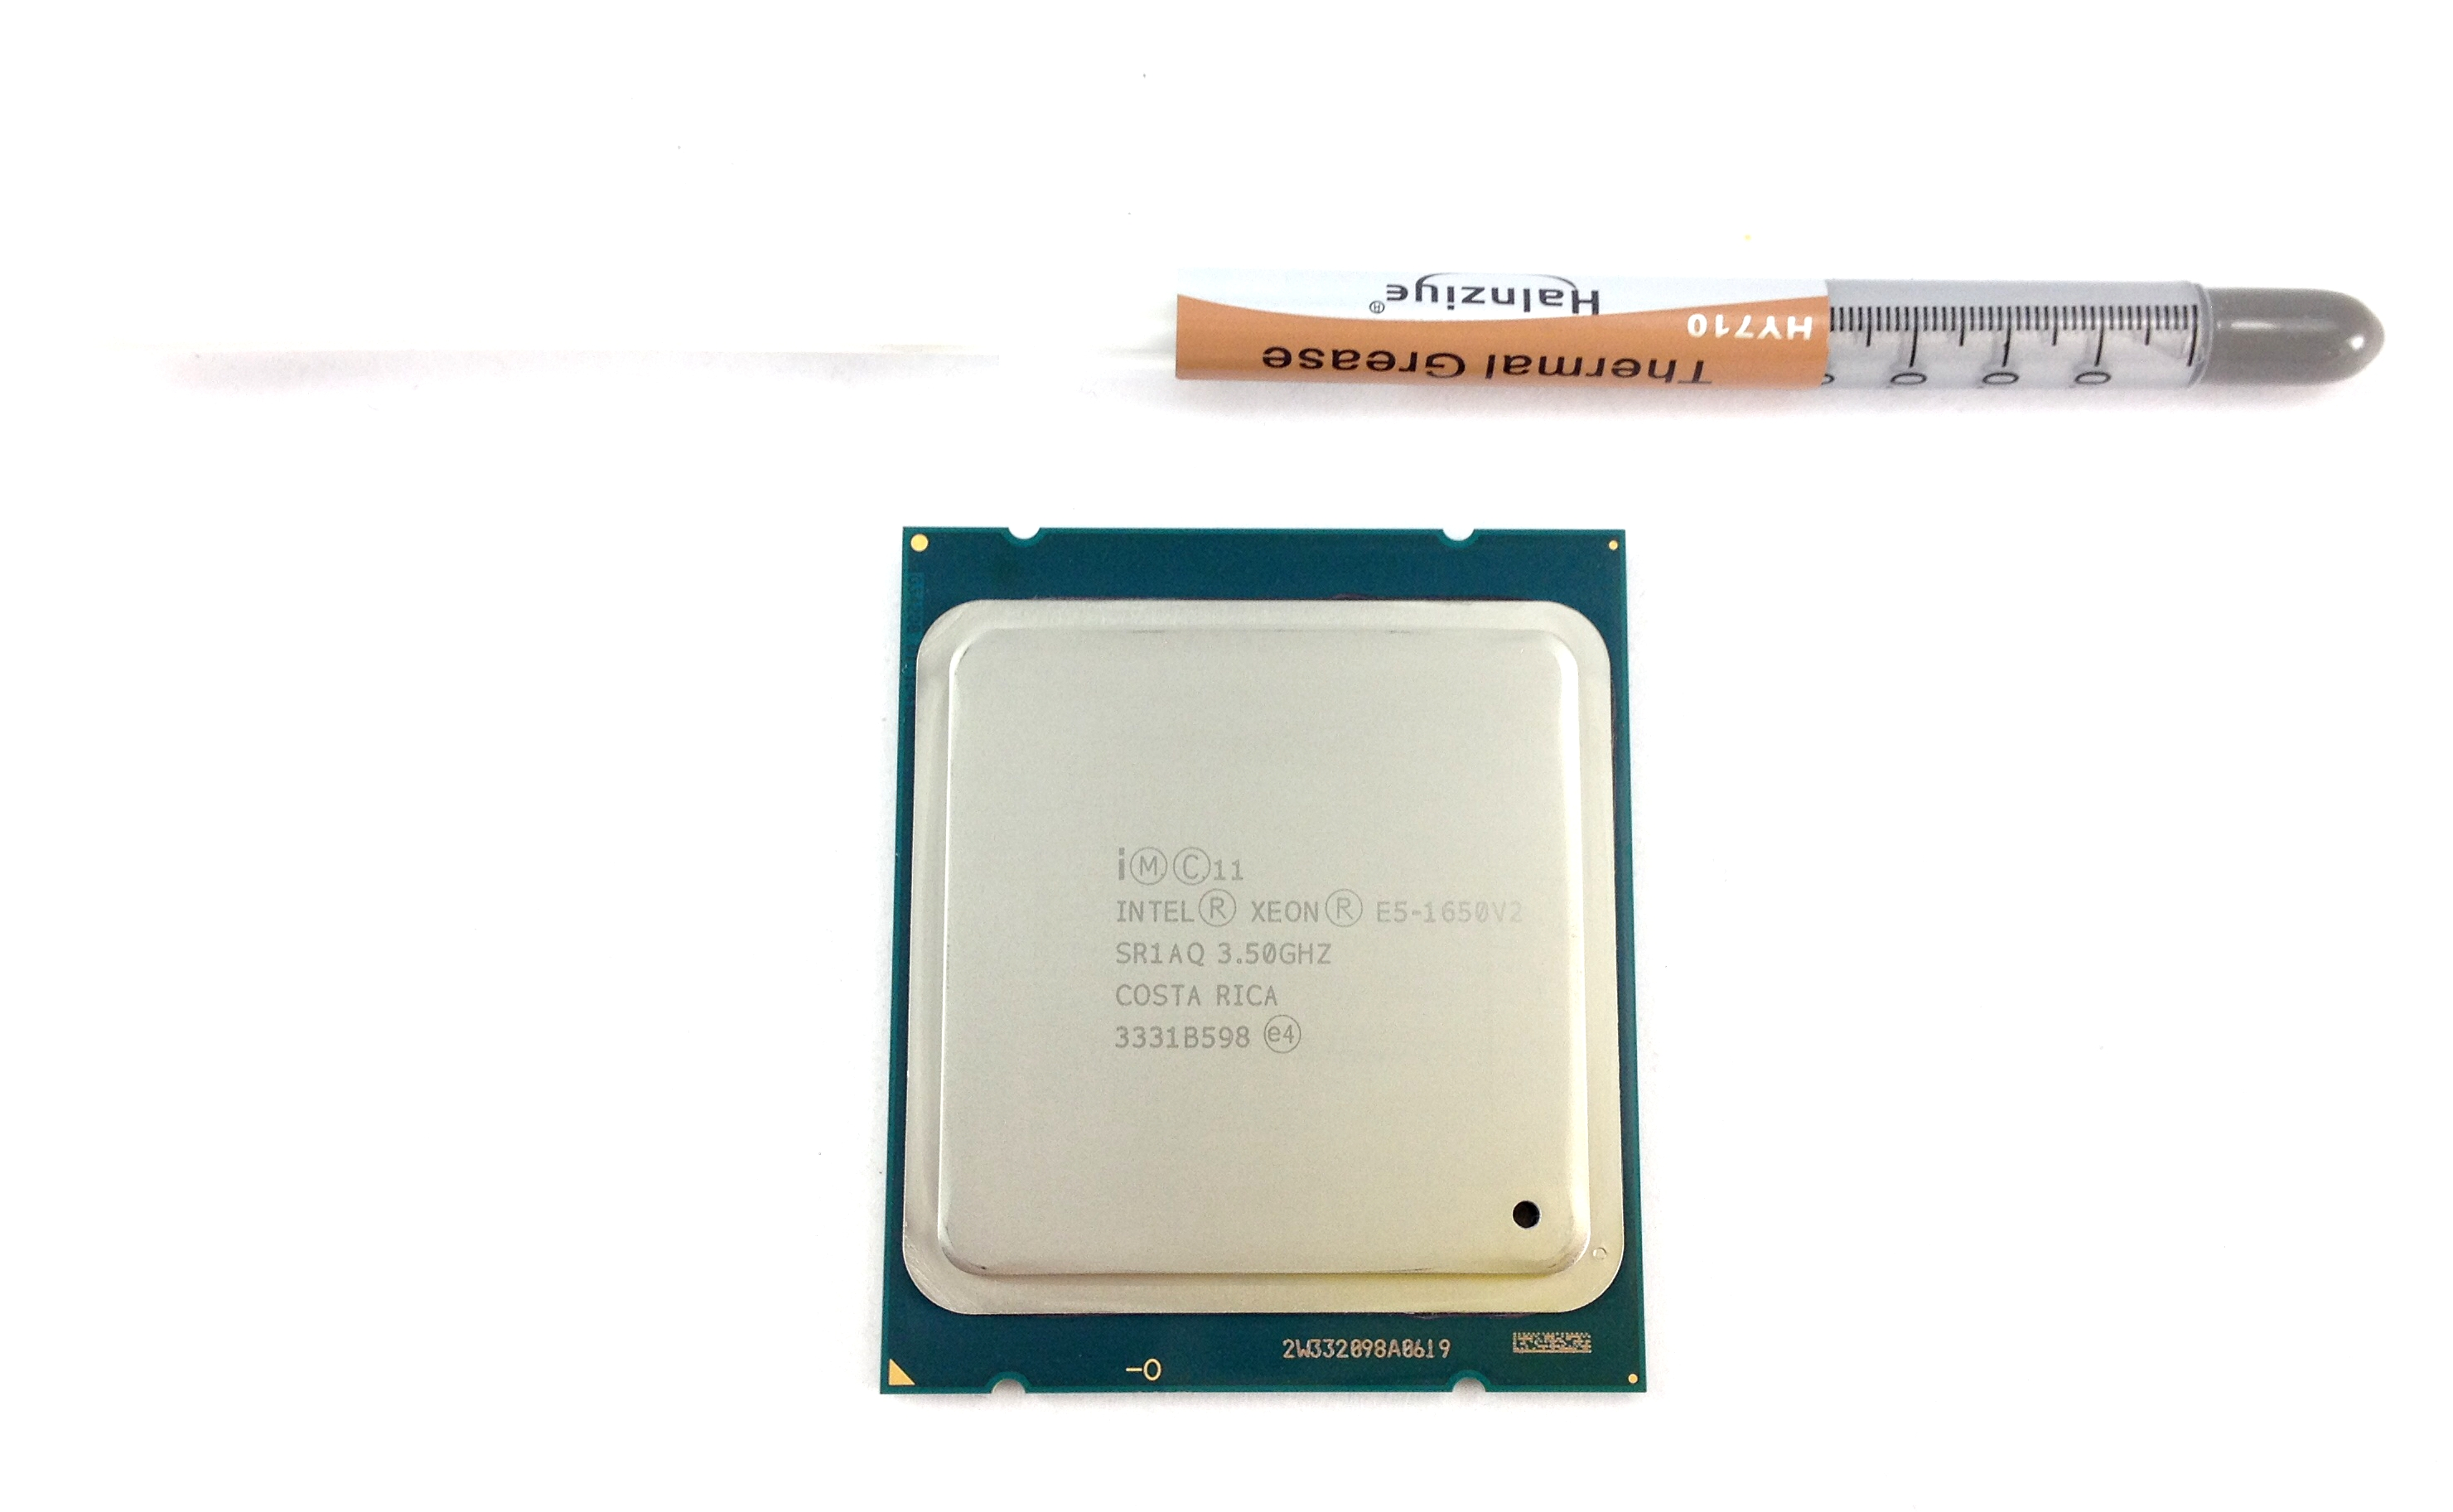 Intel Xeon E5-1650 v2 3.5GHz 6 Core 12MB LGA2011 CPU Processor (SR1AQ)